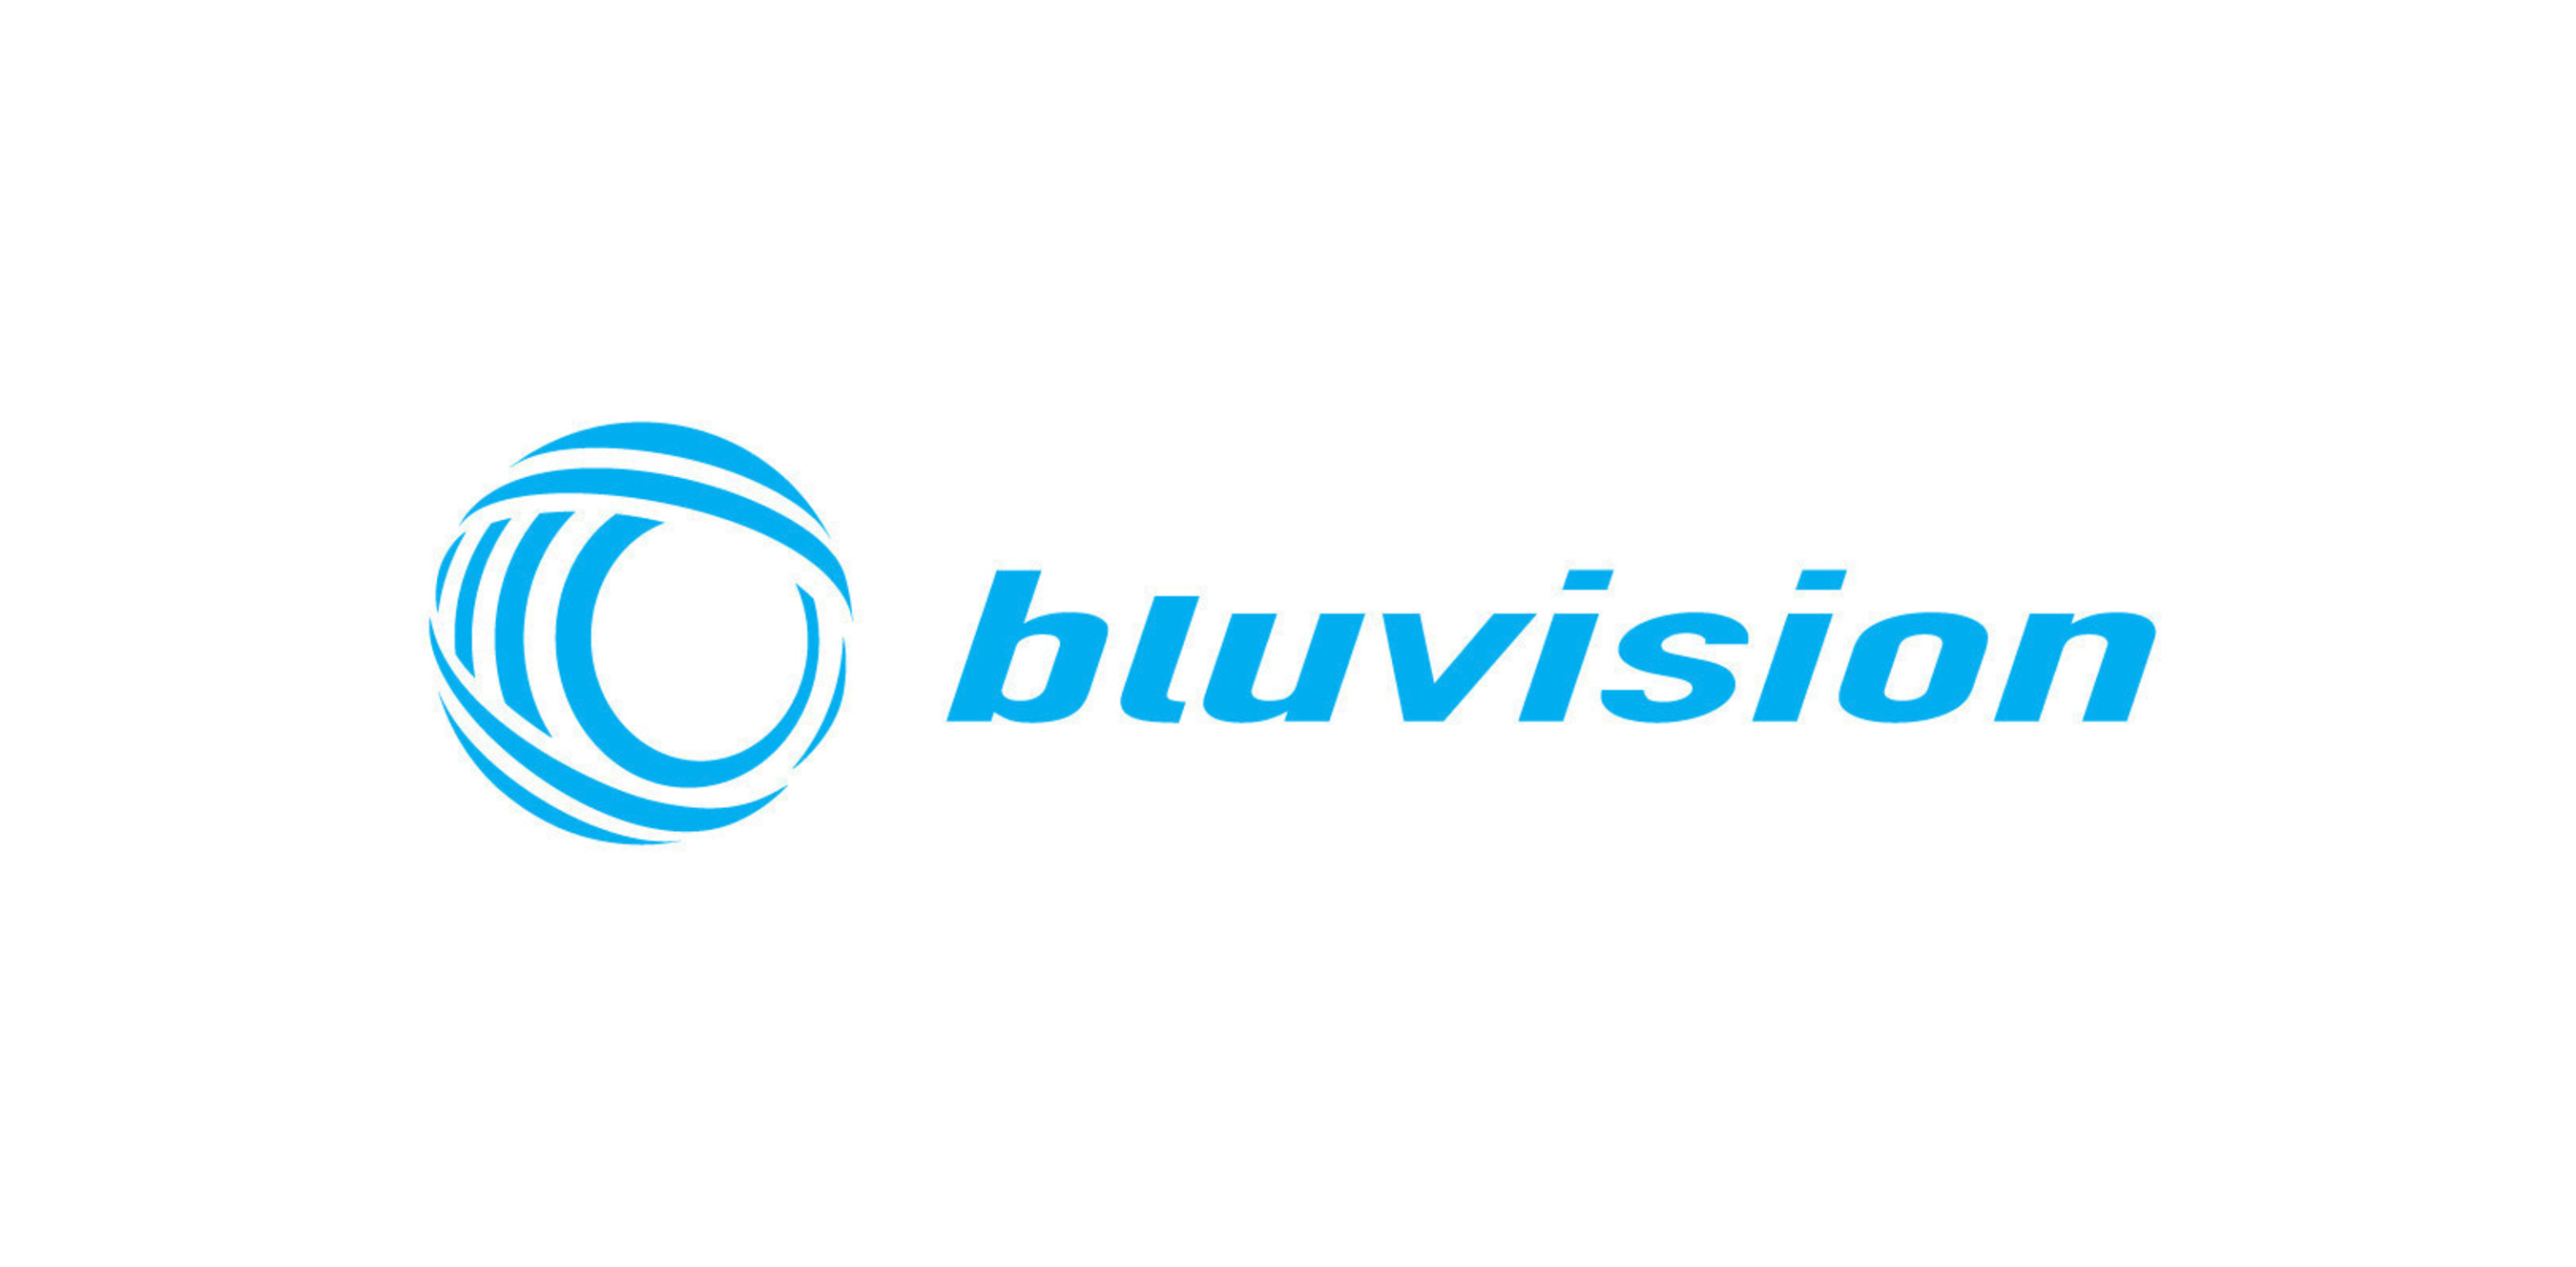 Bluvision First Among Bluetooth Providers to Fully Support Eddystone-EID - A New, Open Eddystone Frame Type From Google